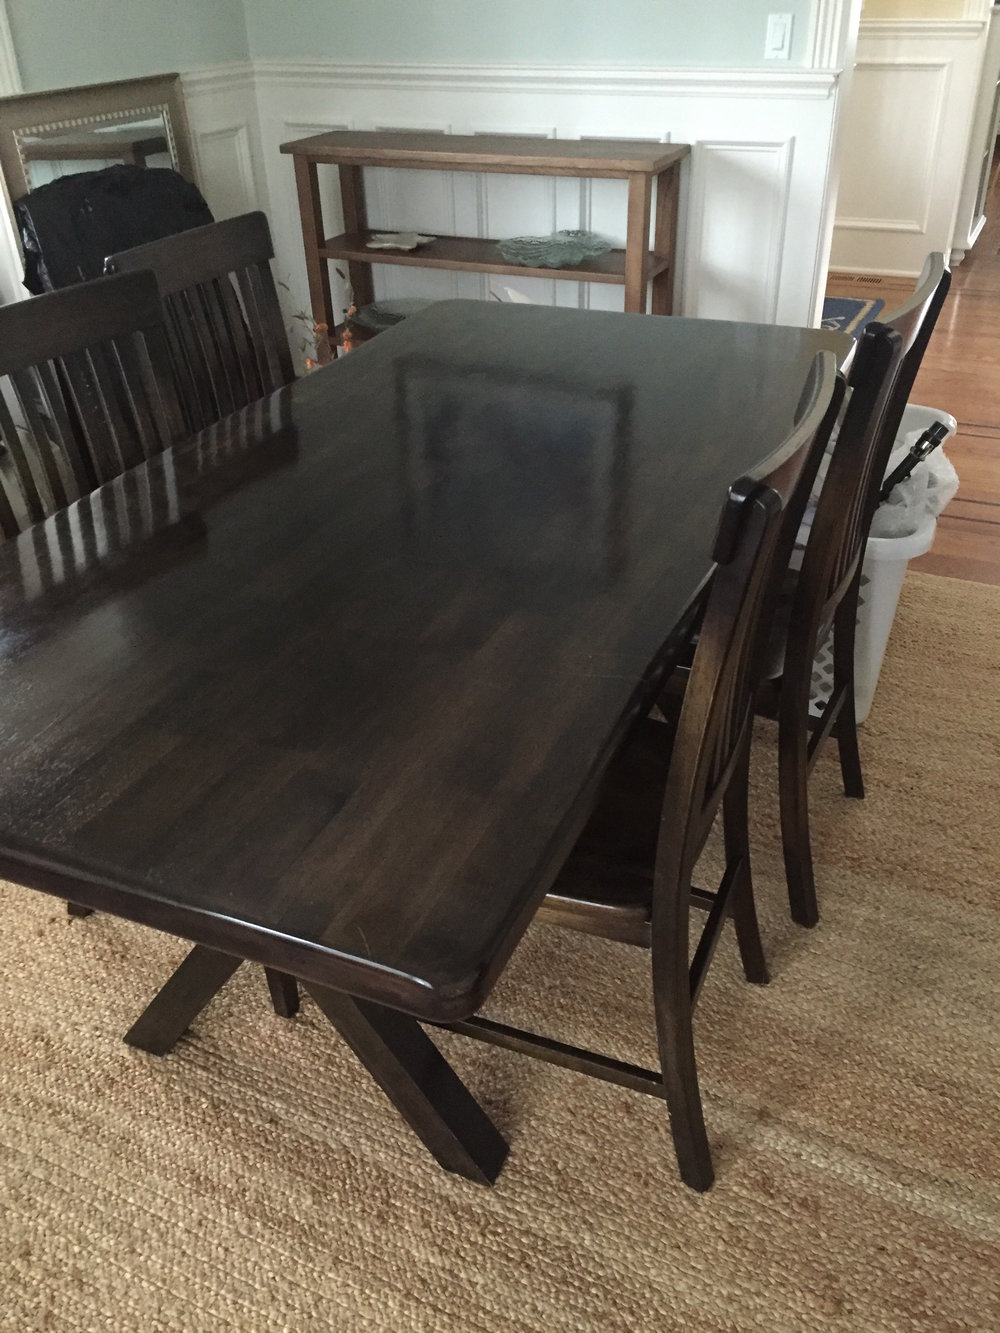 This farmhouse style table with a bench was not needed for the dining room, and provides great workspace for the entire family.